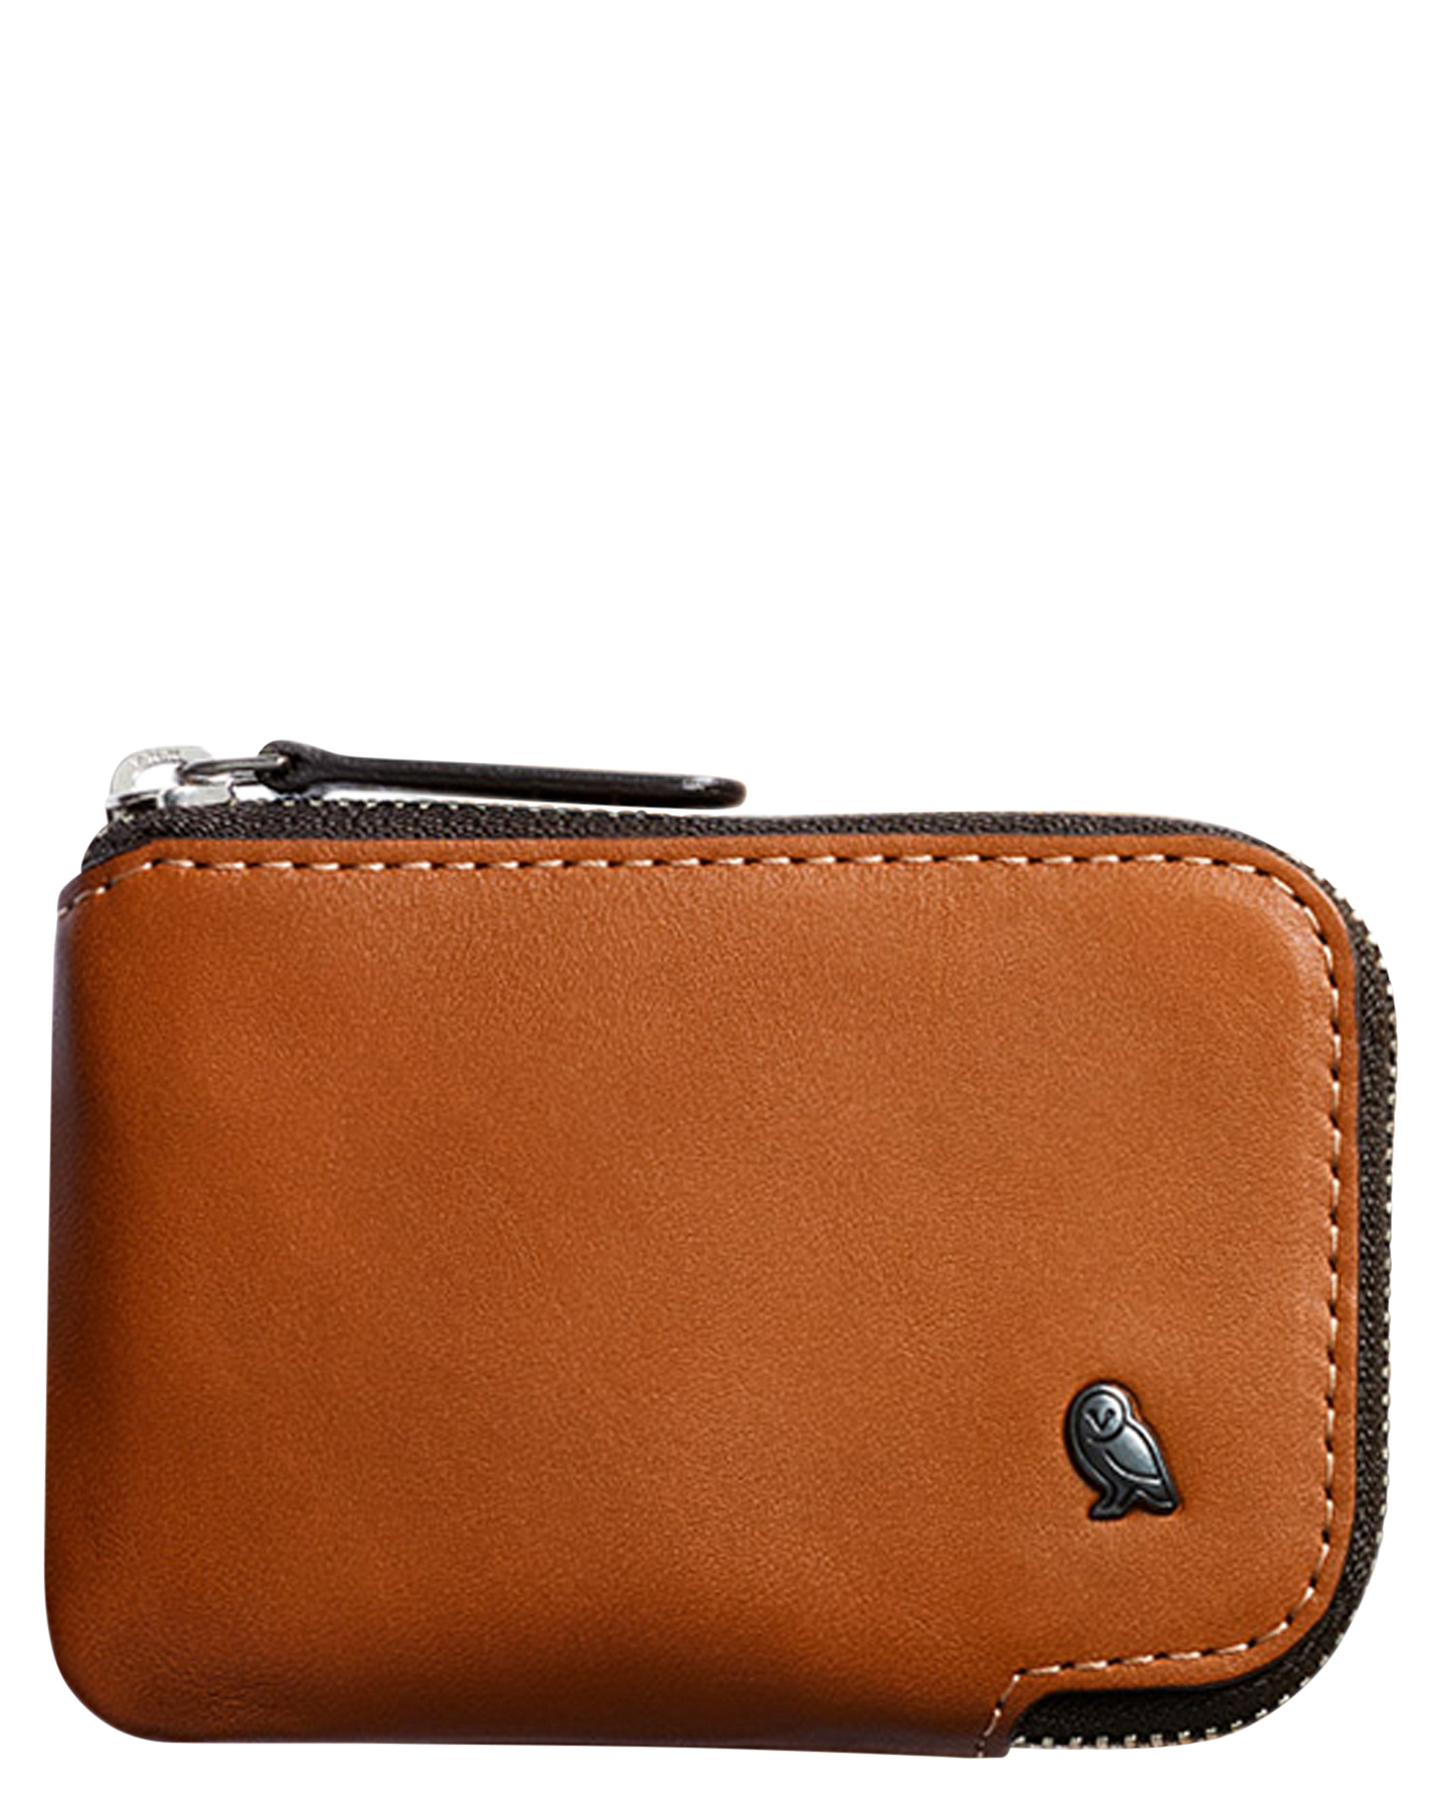 Bellroy Card Pocket Wallet Caramel Caramel